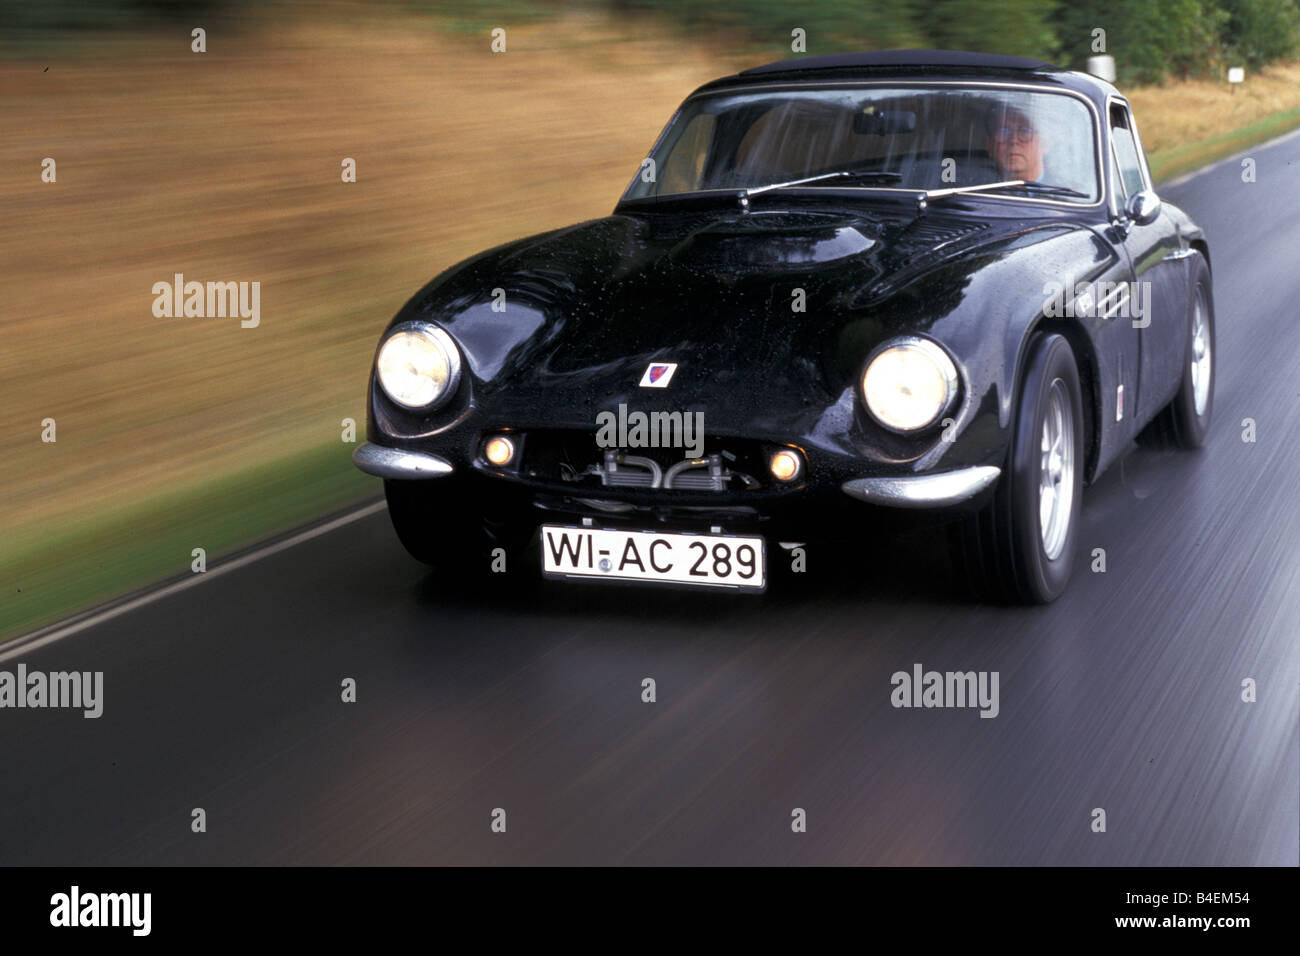 car tvr griffith model year 1963 1965 coup coupe vintage car stock photo royalty free. Black Bedroom Furniture Sets. Home Design Ideas